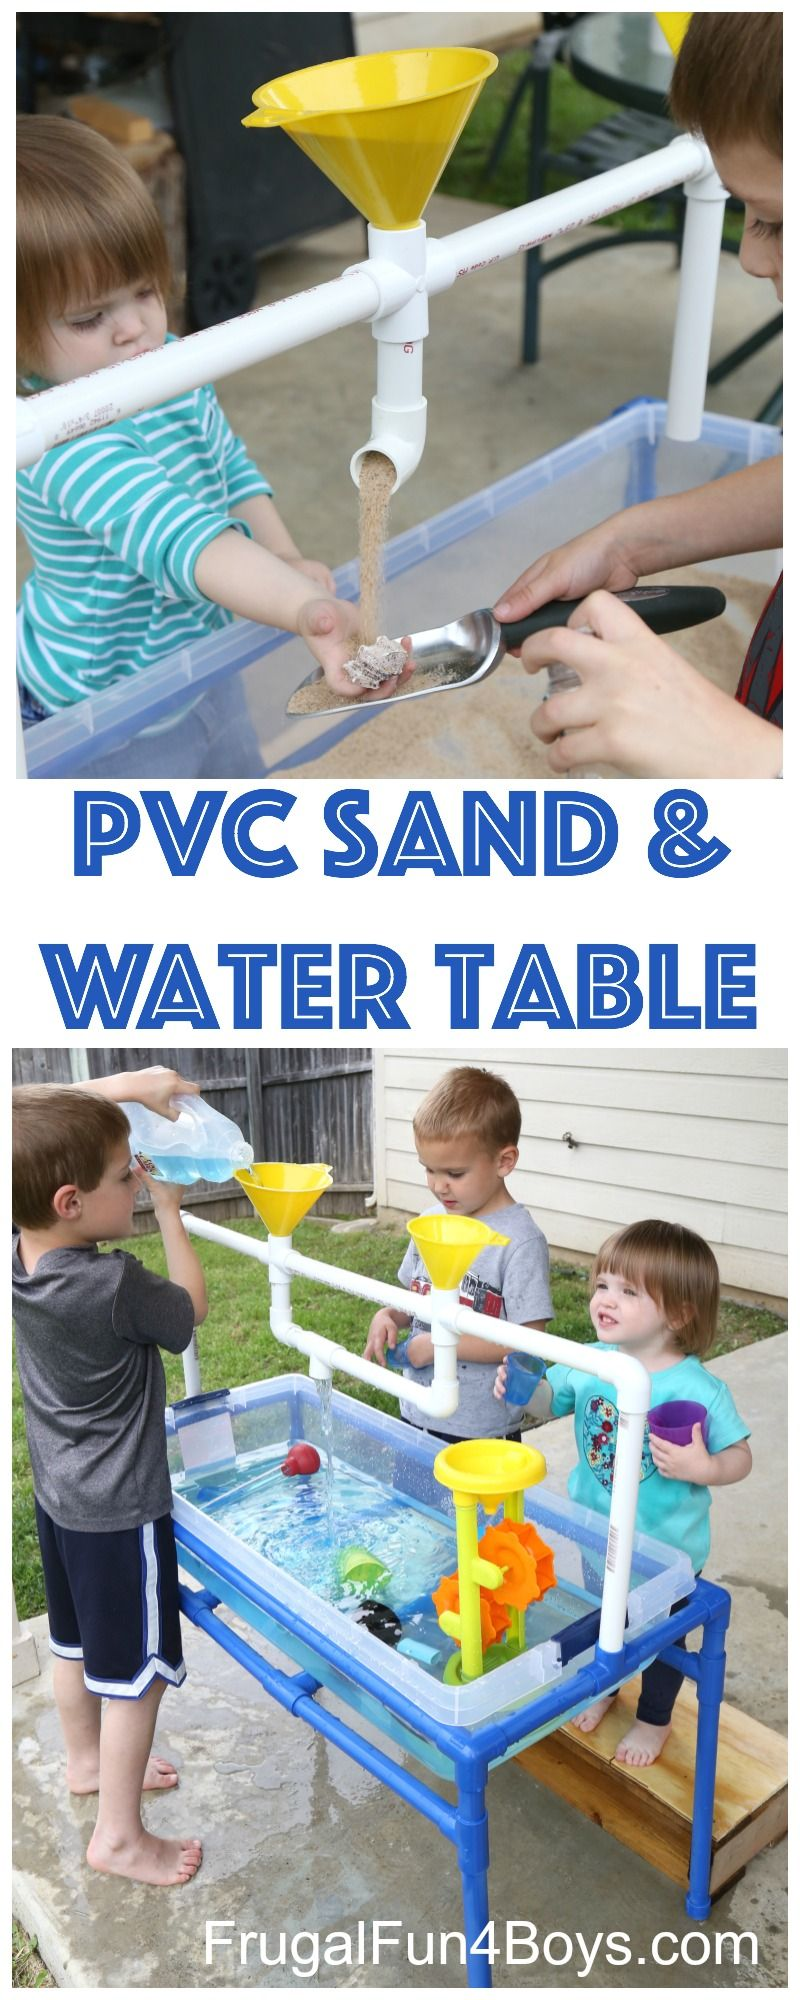 Use Pvc Pipe To Make A Sand And Water Table For Kids My 2 4 6 Year Olds Have Been Loving This Sensory Play